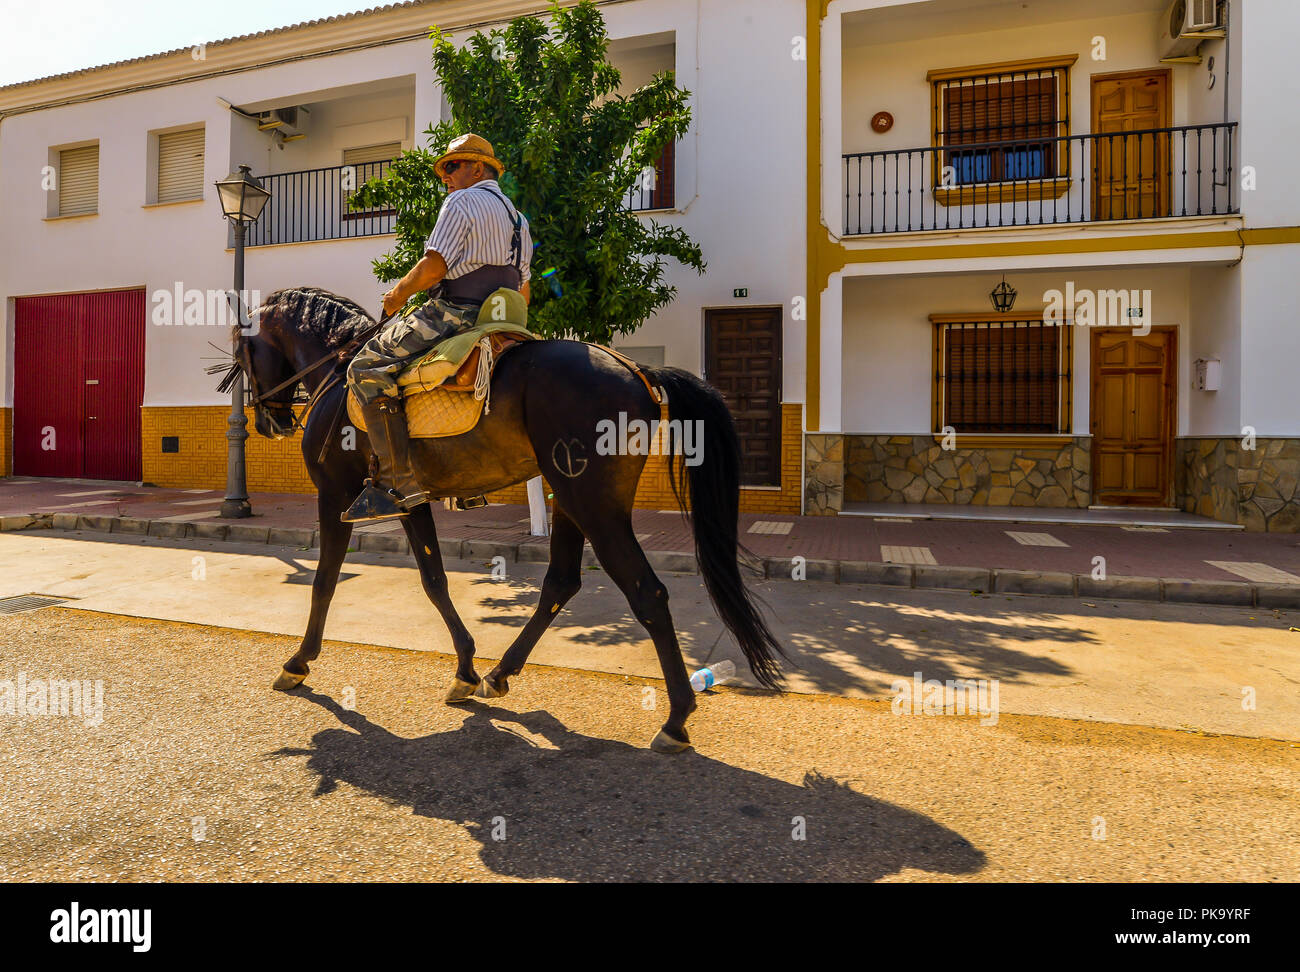 Fuente de Piedra/Spain - 08/20/18 - A man travelling through an Andalucian village - Stock Image